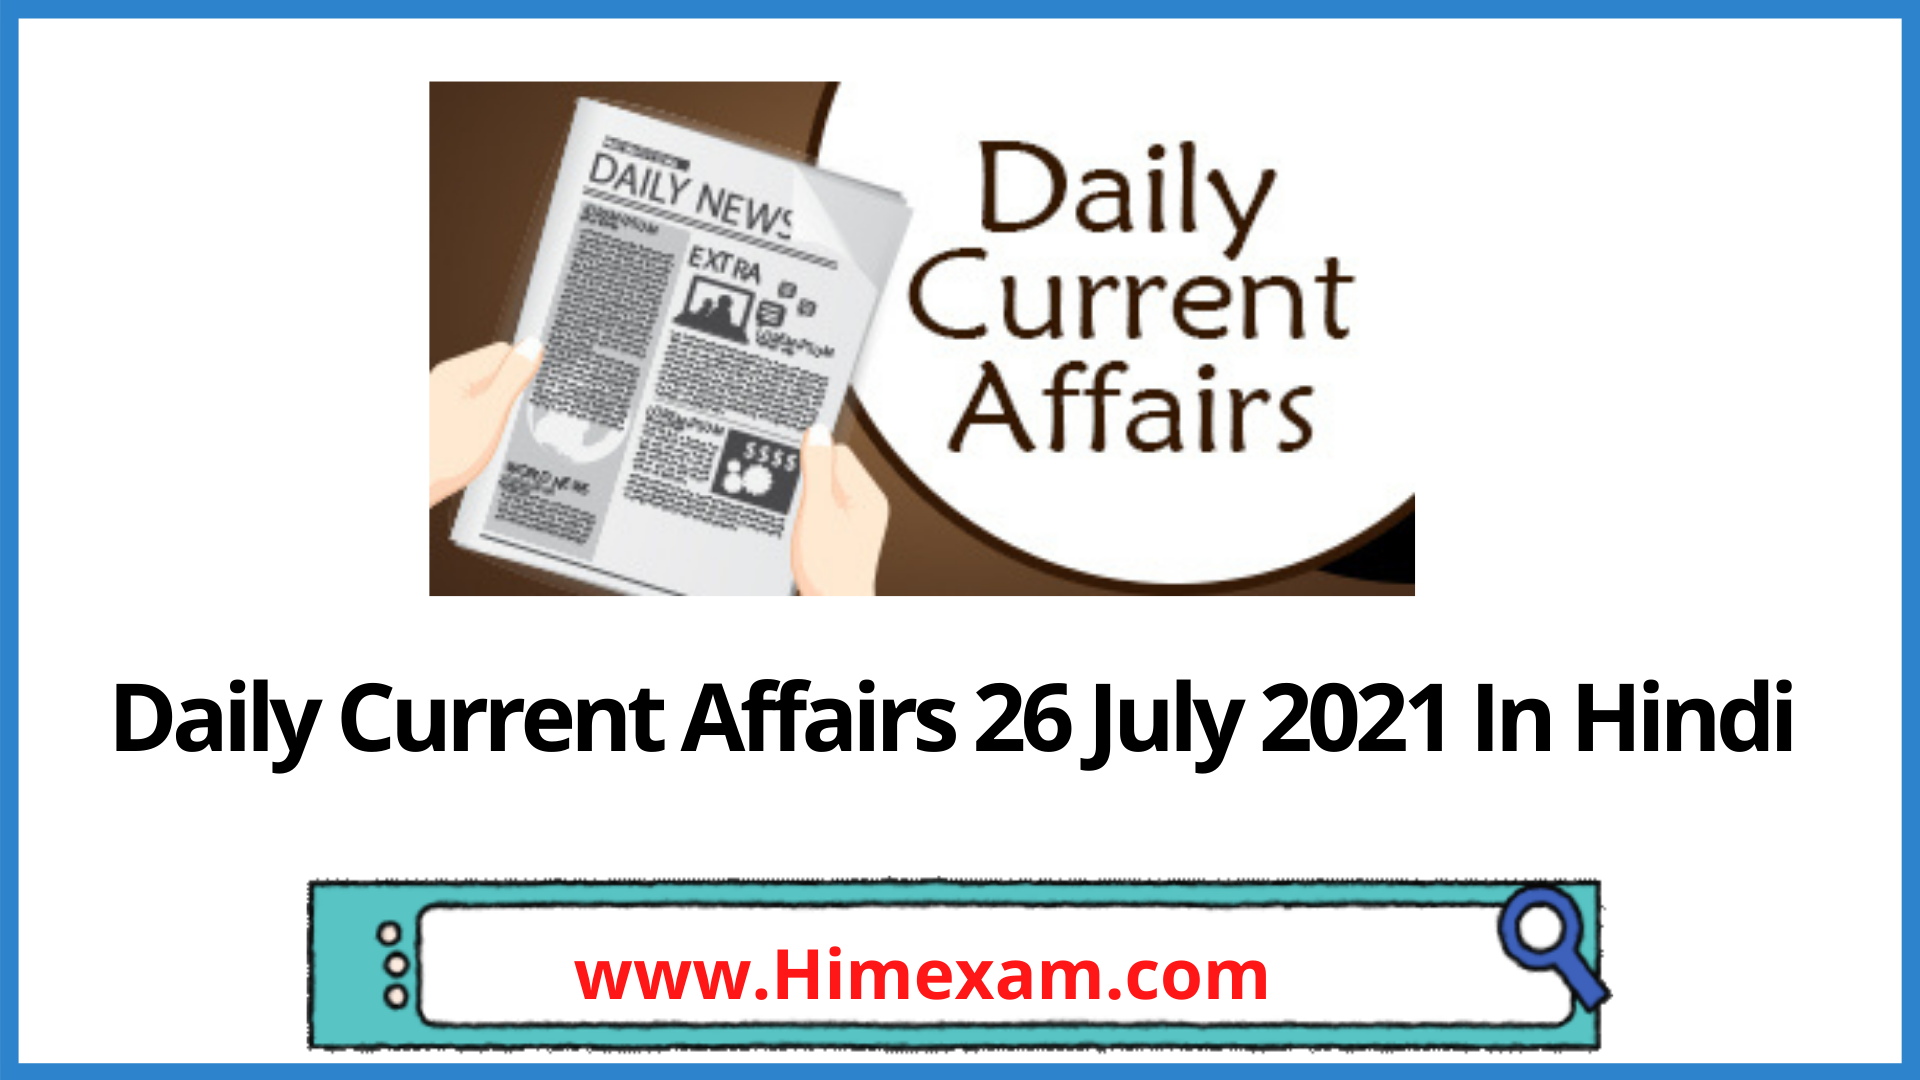 Daily Current Affairs 26 July 2021 In Hindi